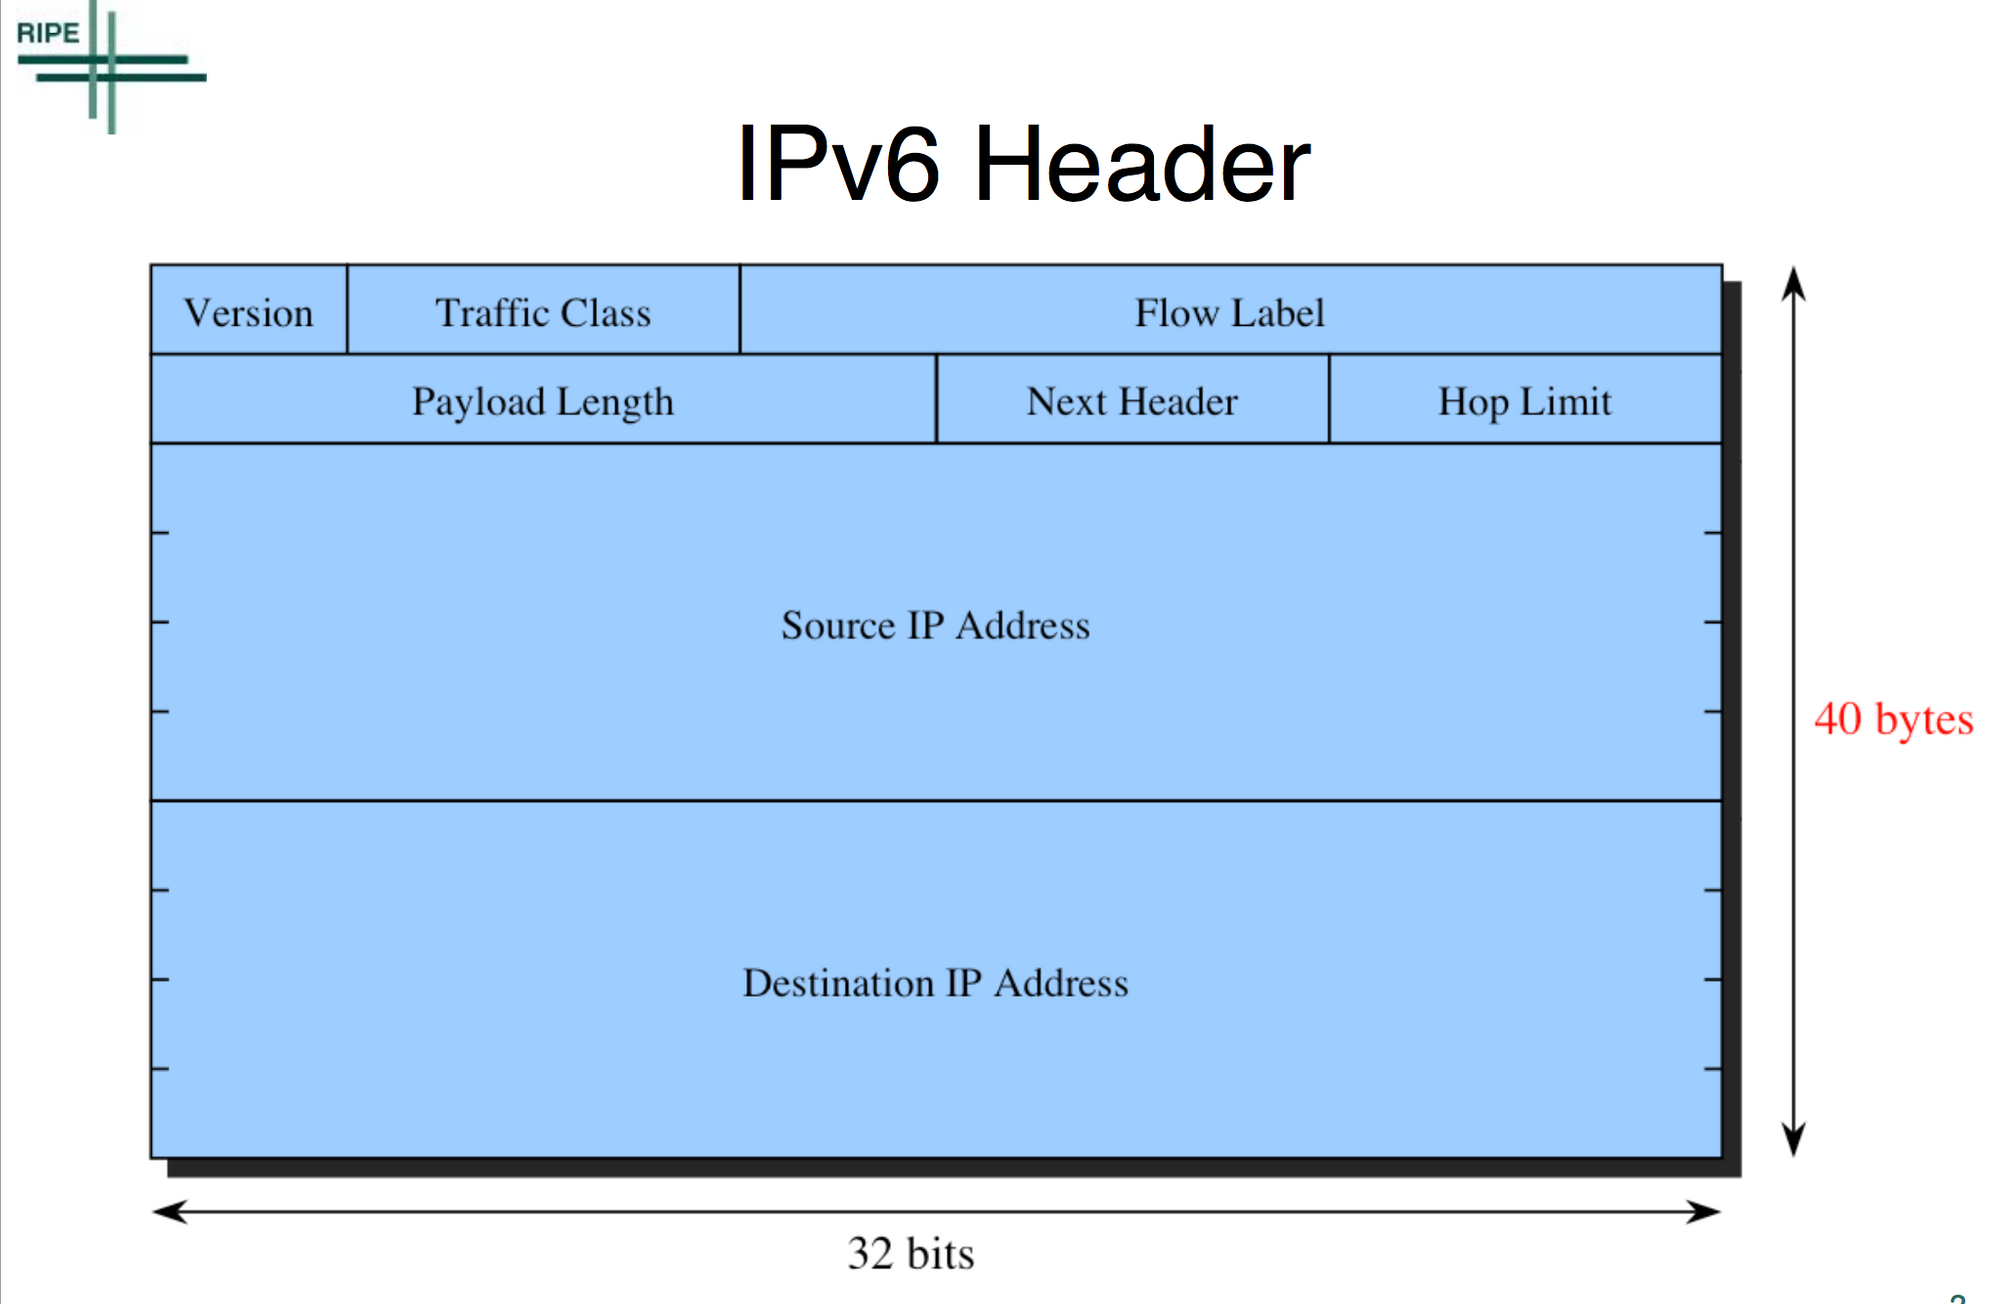 A Brief Comparison of IPv4 and IPv6